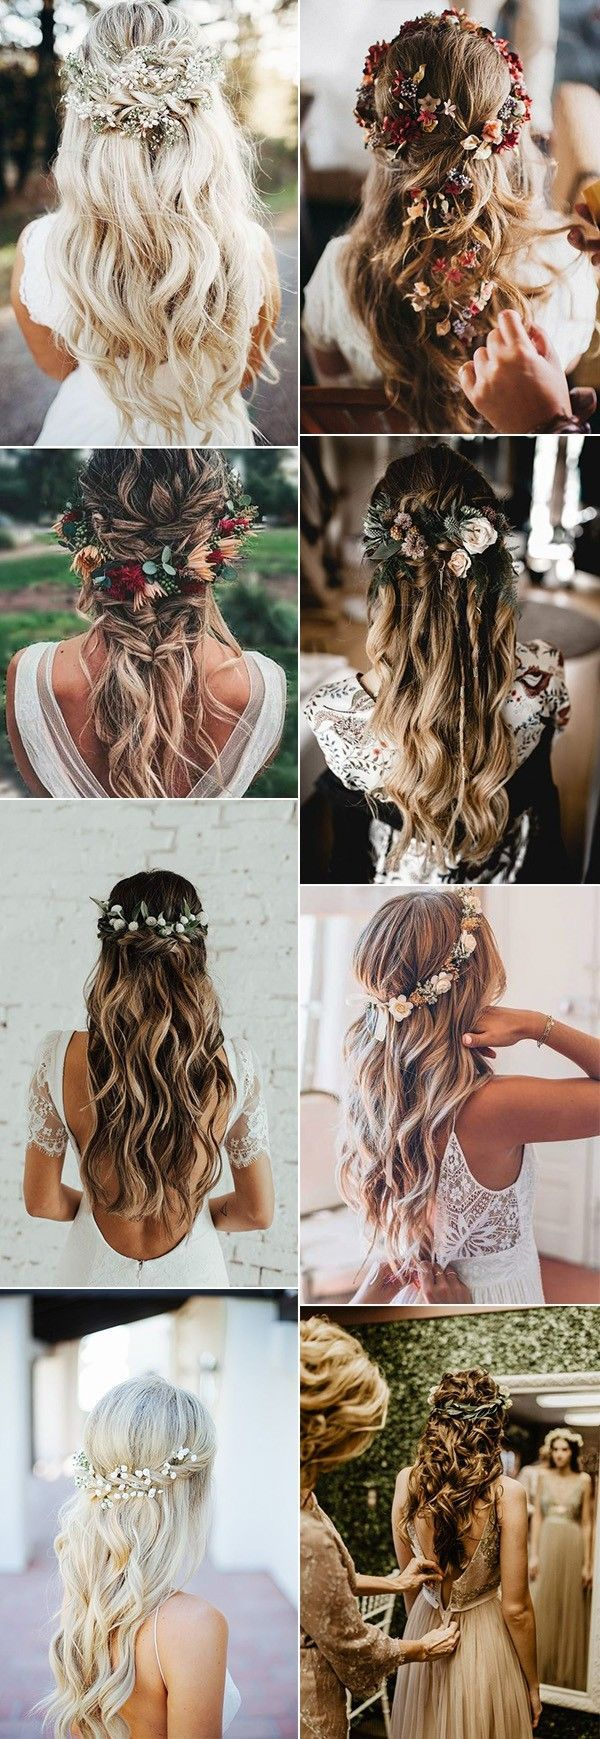 20 Attractive Wedding ceremony Hairstyles with Flowers for Fall